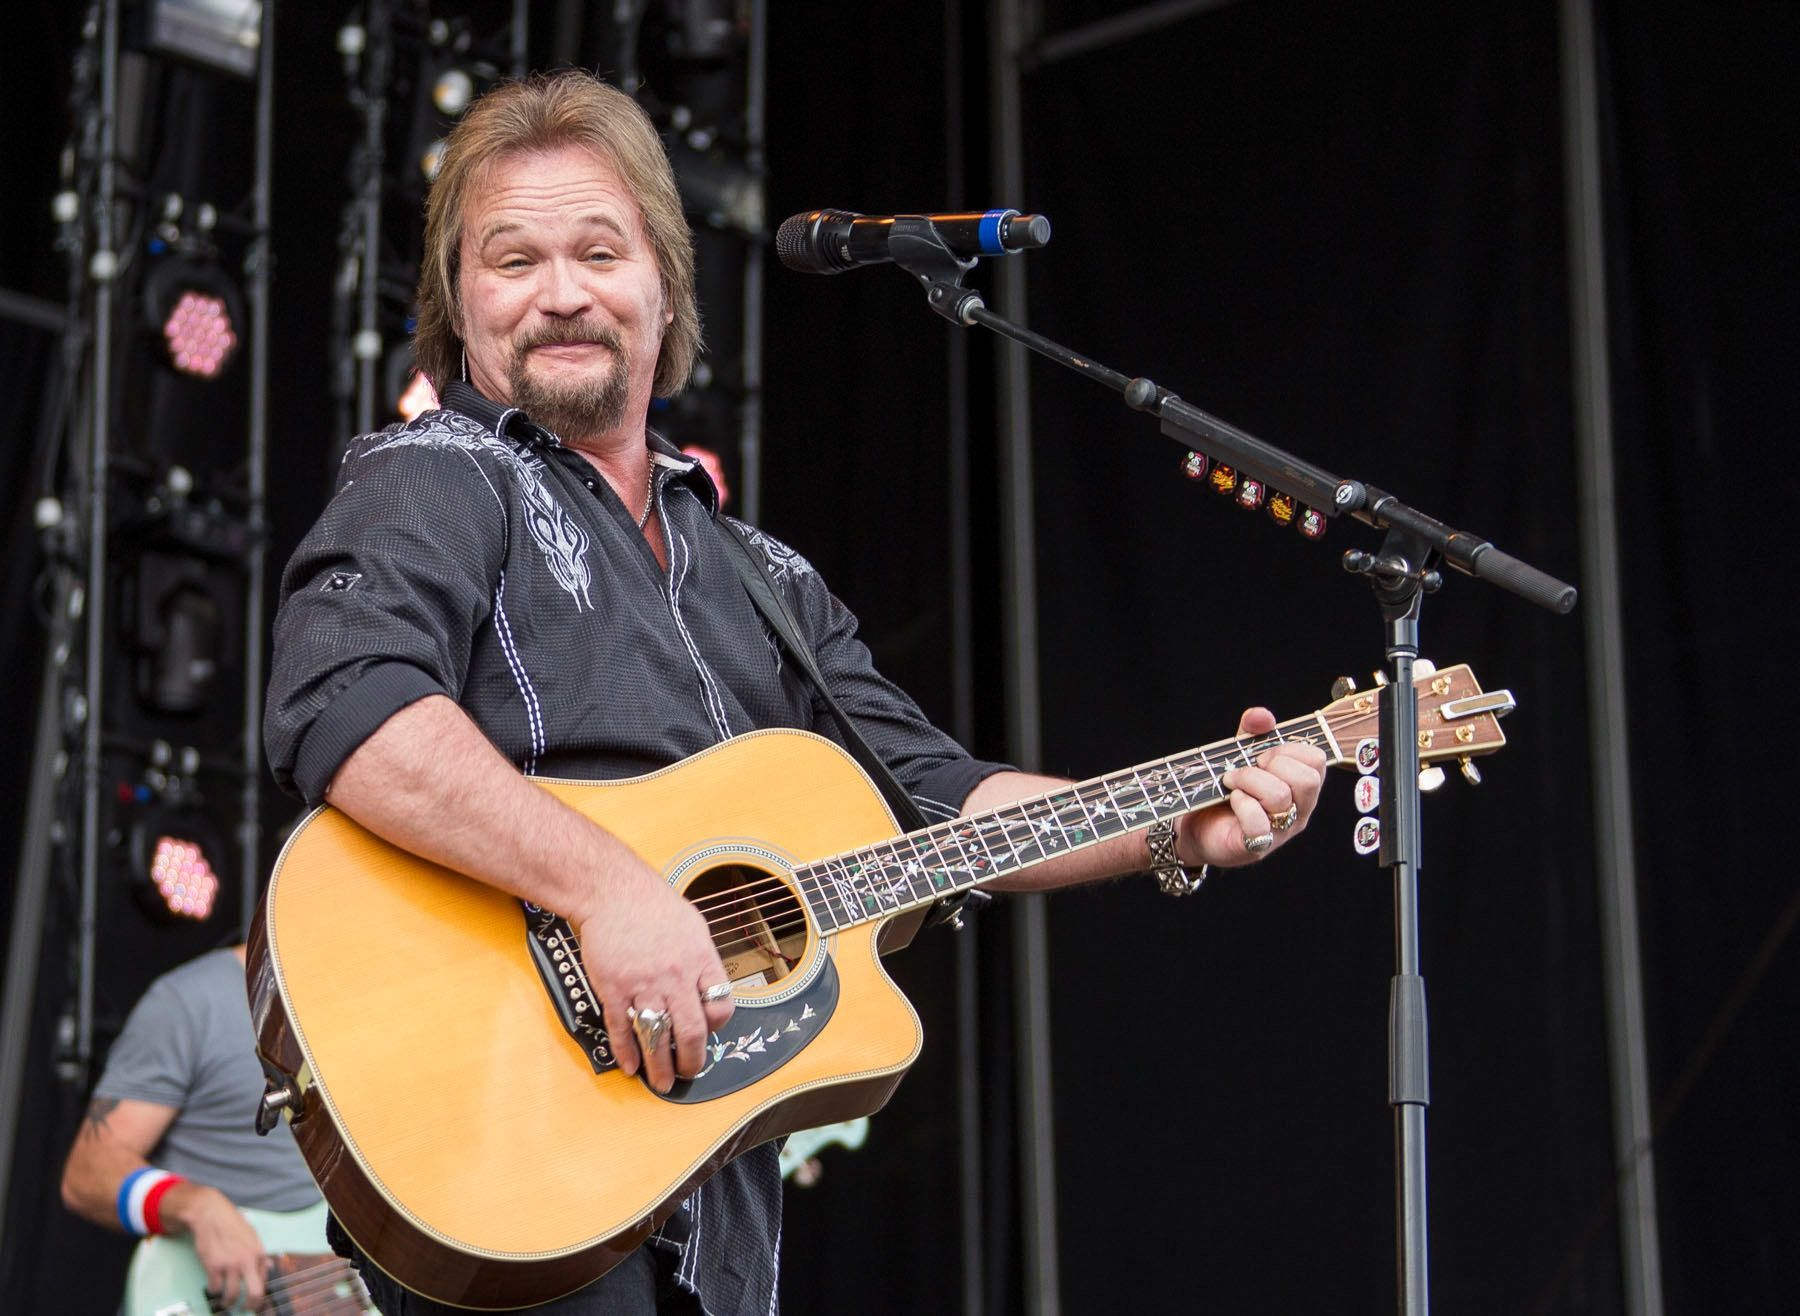 BROOKLYN, MI - JULY 16:  Travis Tritt performs during Faster Horses Festival at Michigan International Speedway on July 16, 2016 in Brooklyn, Michigan.  (Photo by Scott Legato/Getty Images)